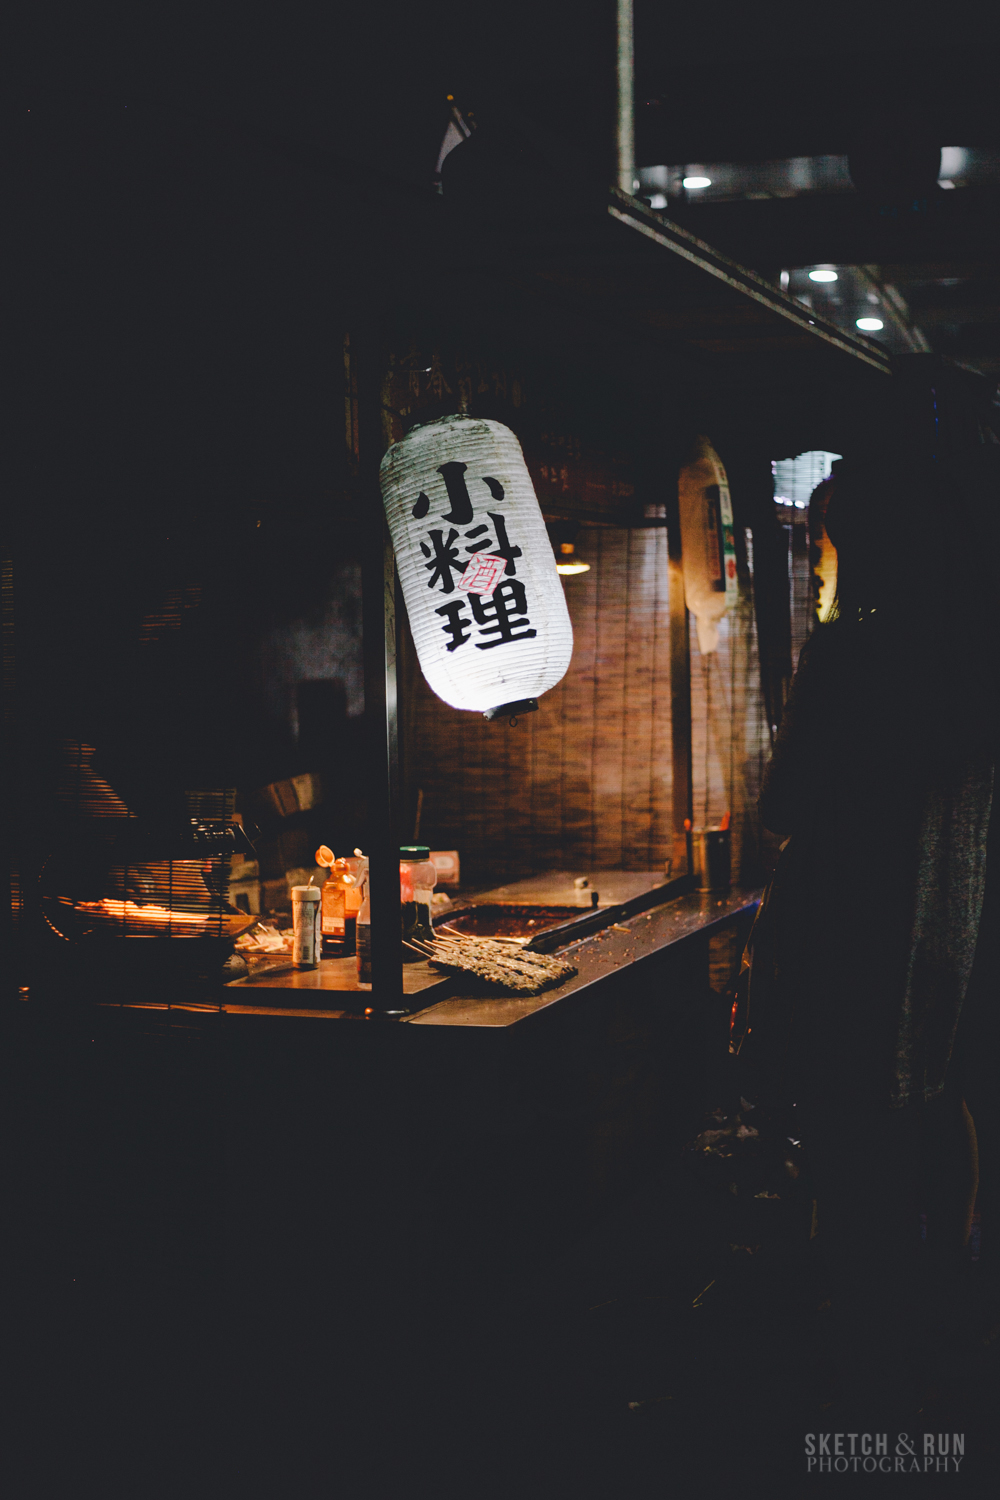 seoul, food, food cart, moody, dramatic lighting,